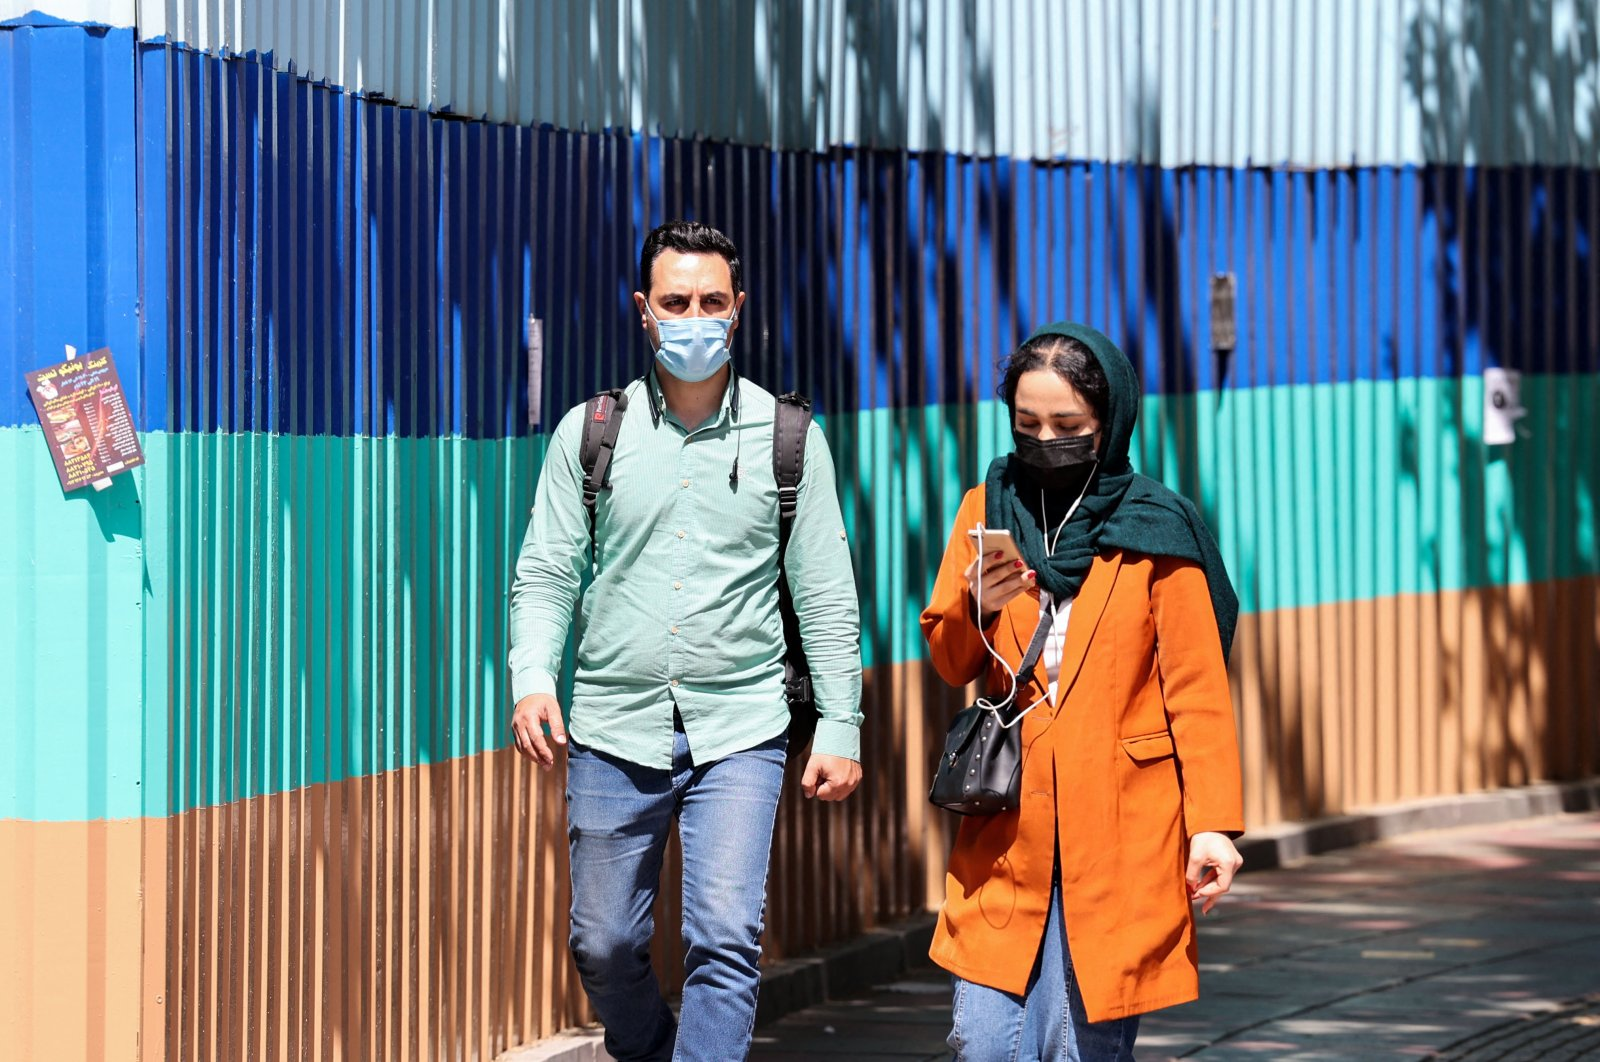 Iranians wearing protective masks walk on a sidewalk, following the tightening of restrictions to curb the surge of COVID-19 cases, in the capital Tehran, Iran, April 12, 2021. (AFP Photo)